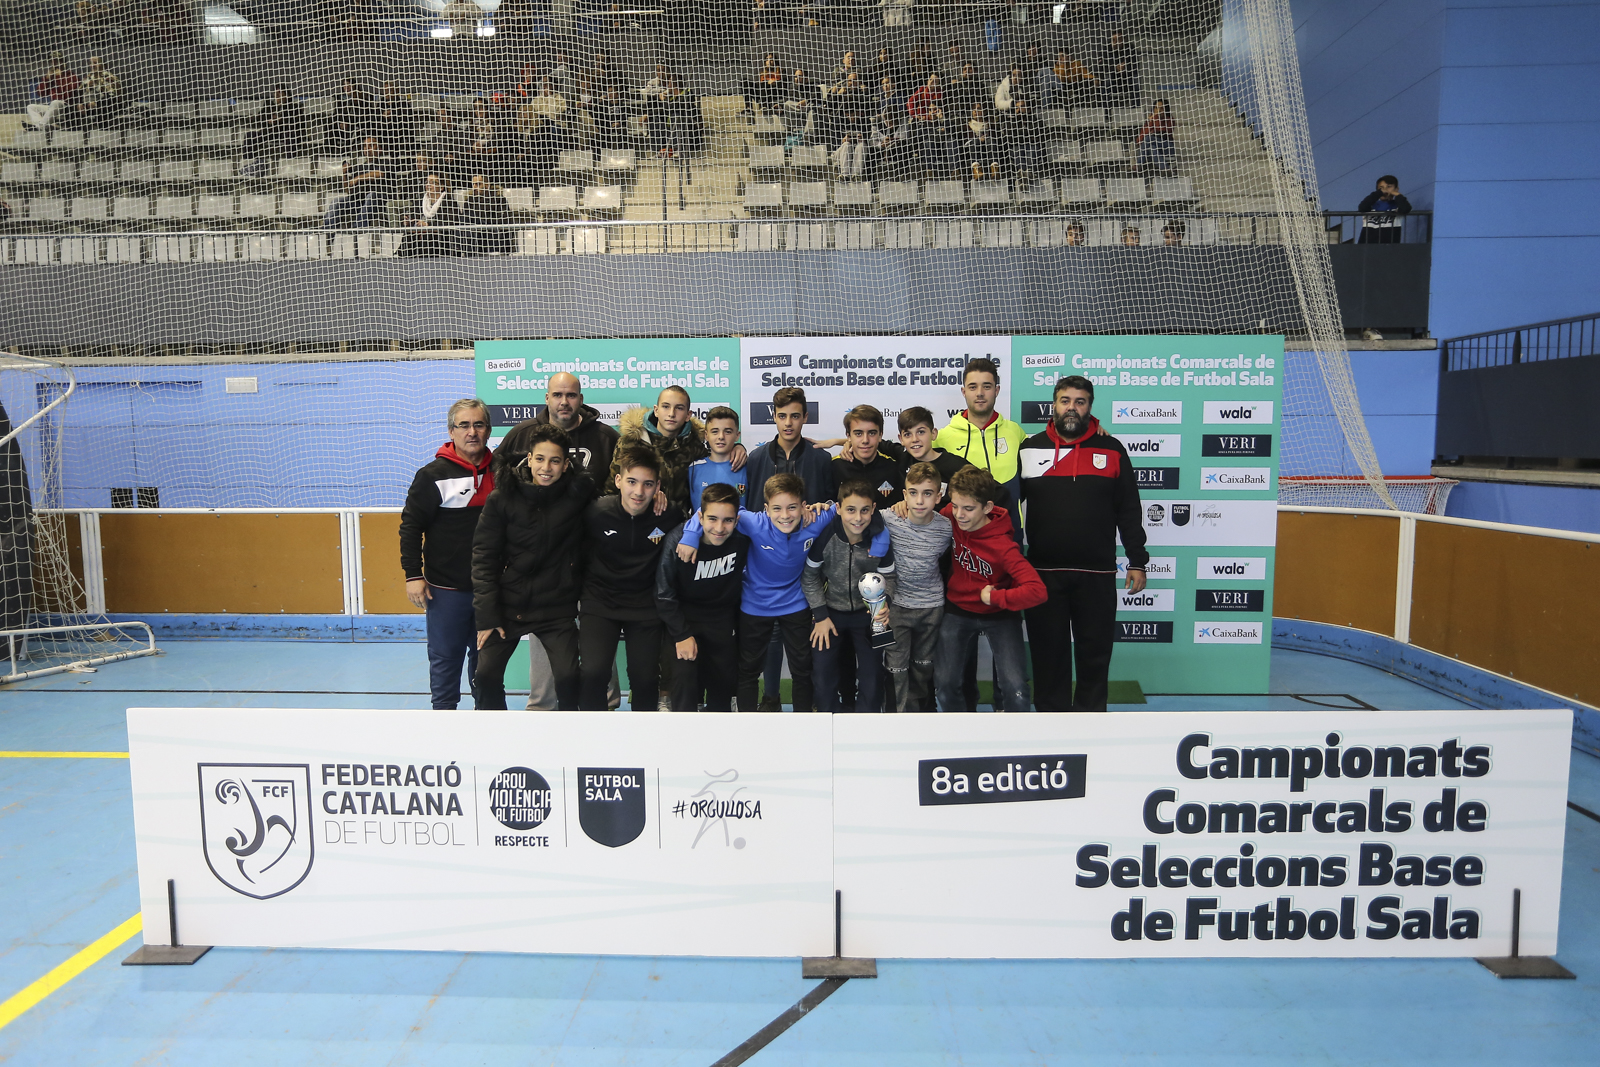 Campionat Comarcal Blanes (FCF)